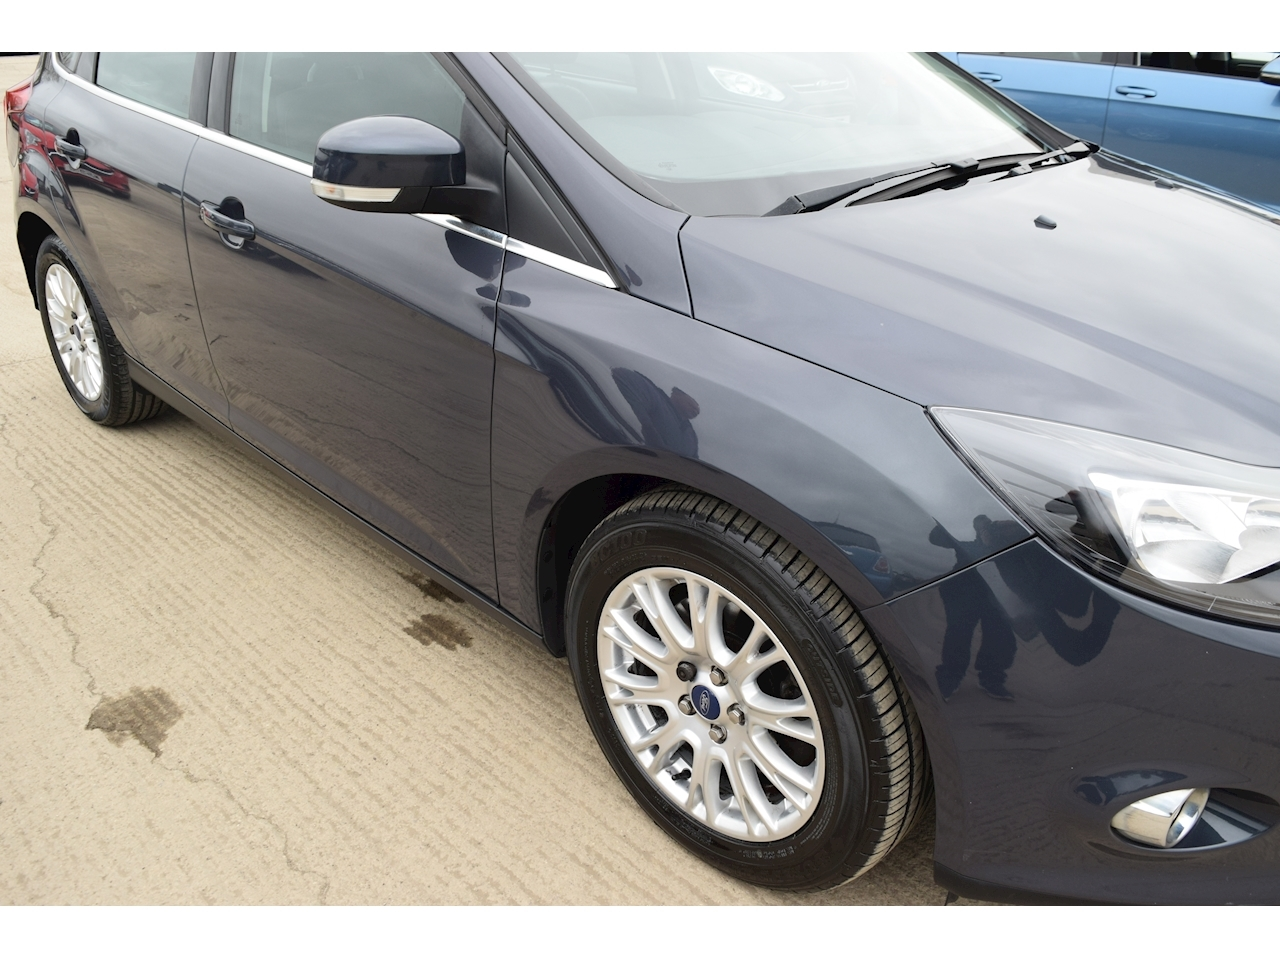 Ford Focus Titanium Tdci Hatchback 2.0 Manual Diesel